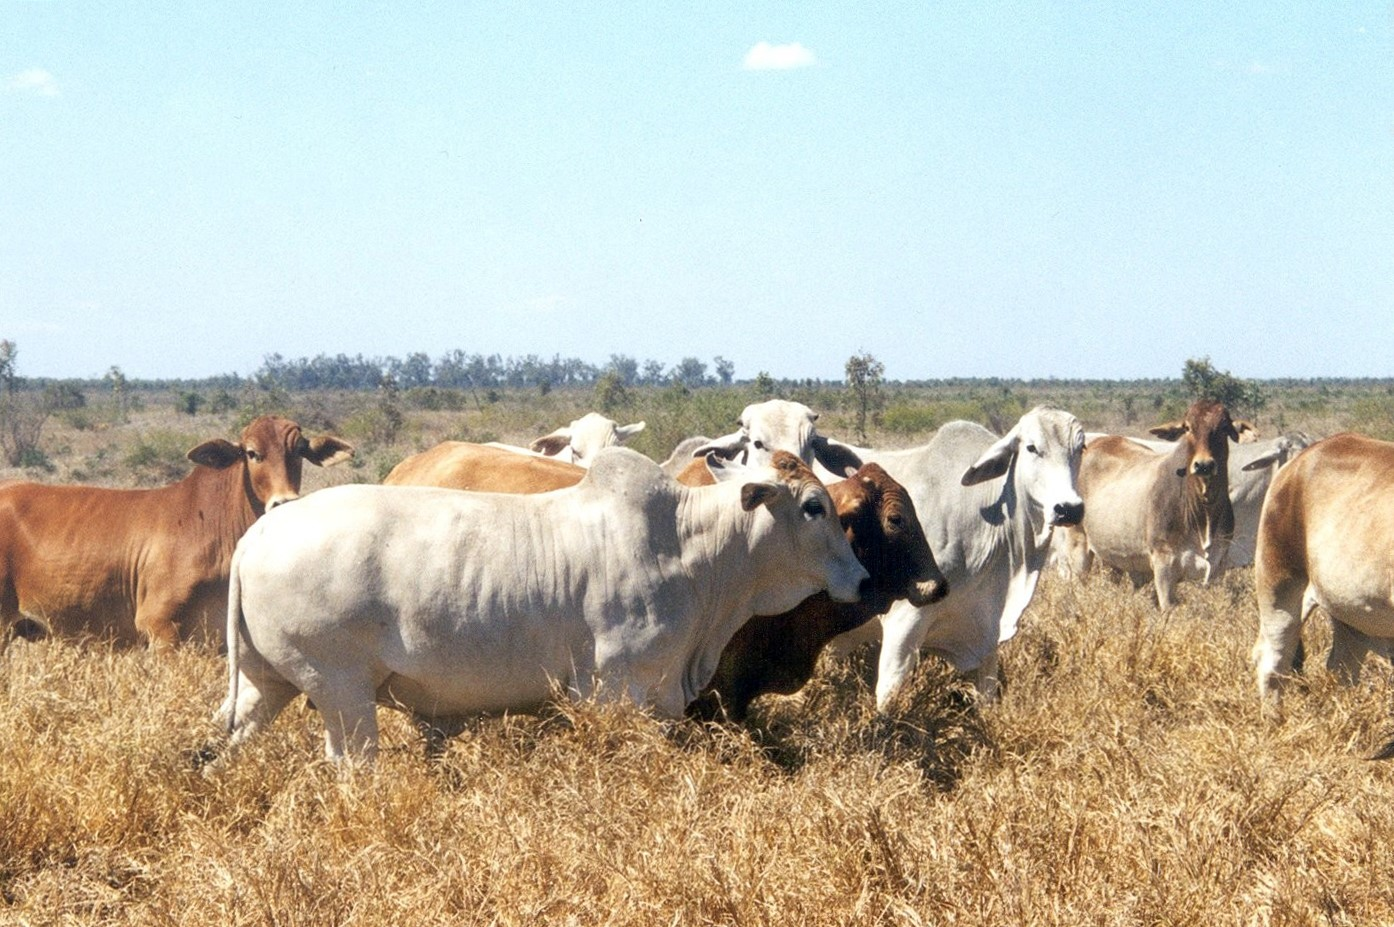 The Brahman cattle breed